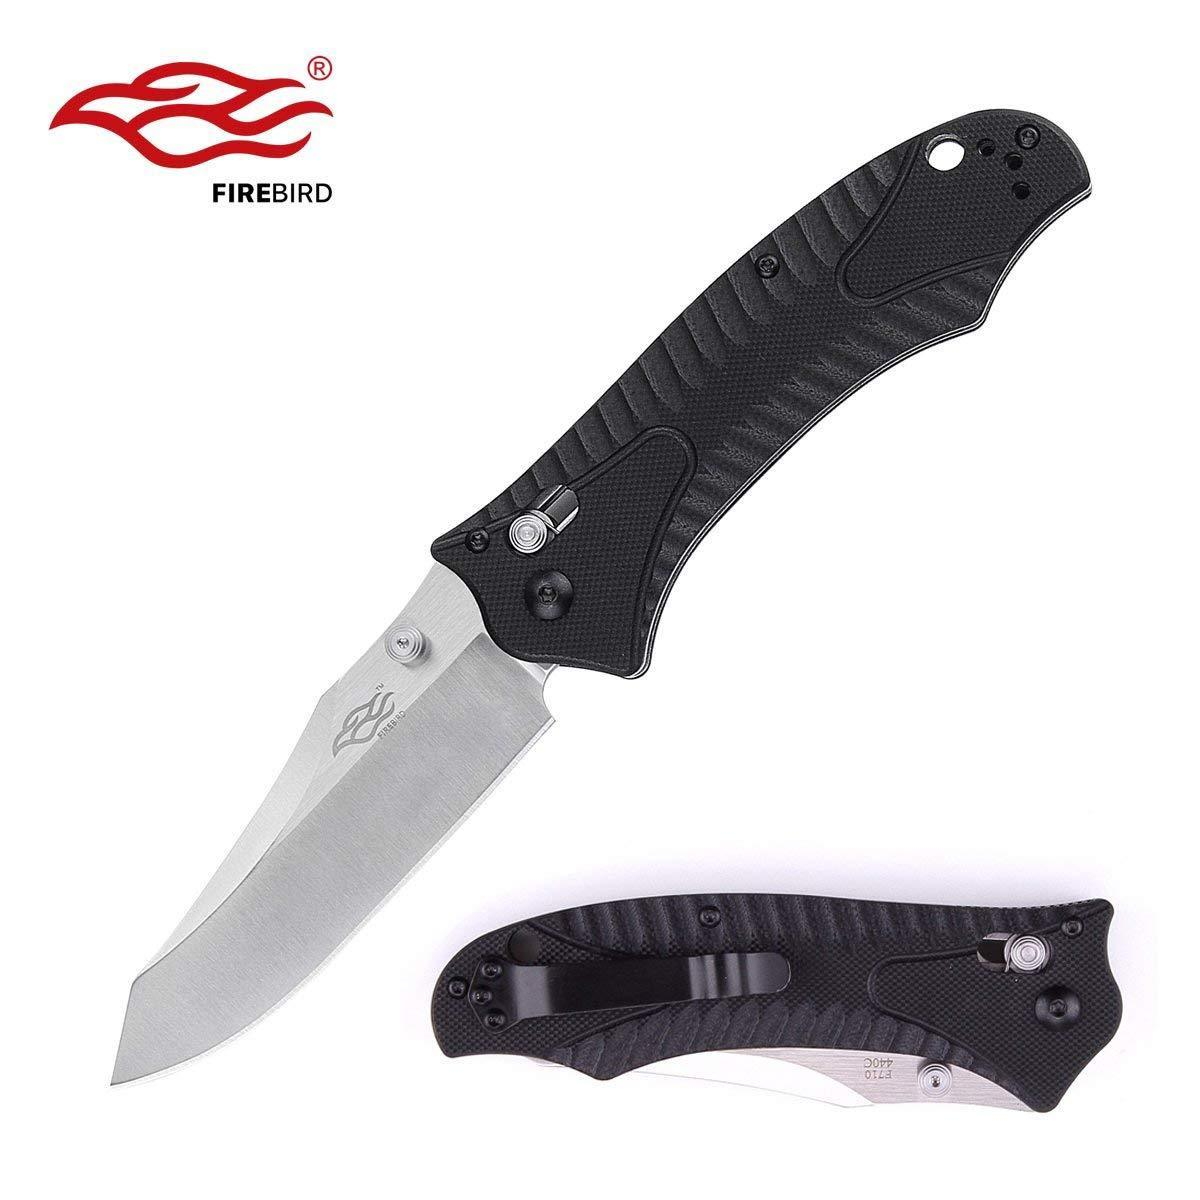 GANZO Firebird F710 Sheepsfoot Axis Lock Knife G10 Scales EDC Fast USA Free Ship